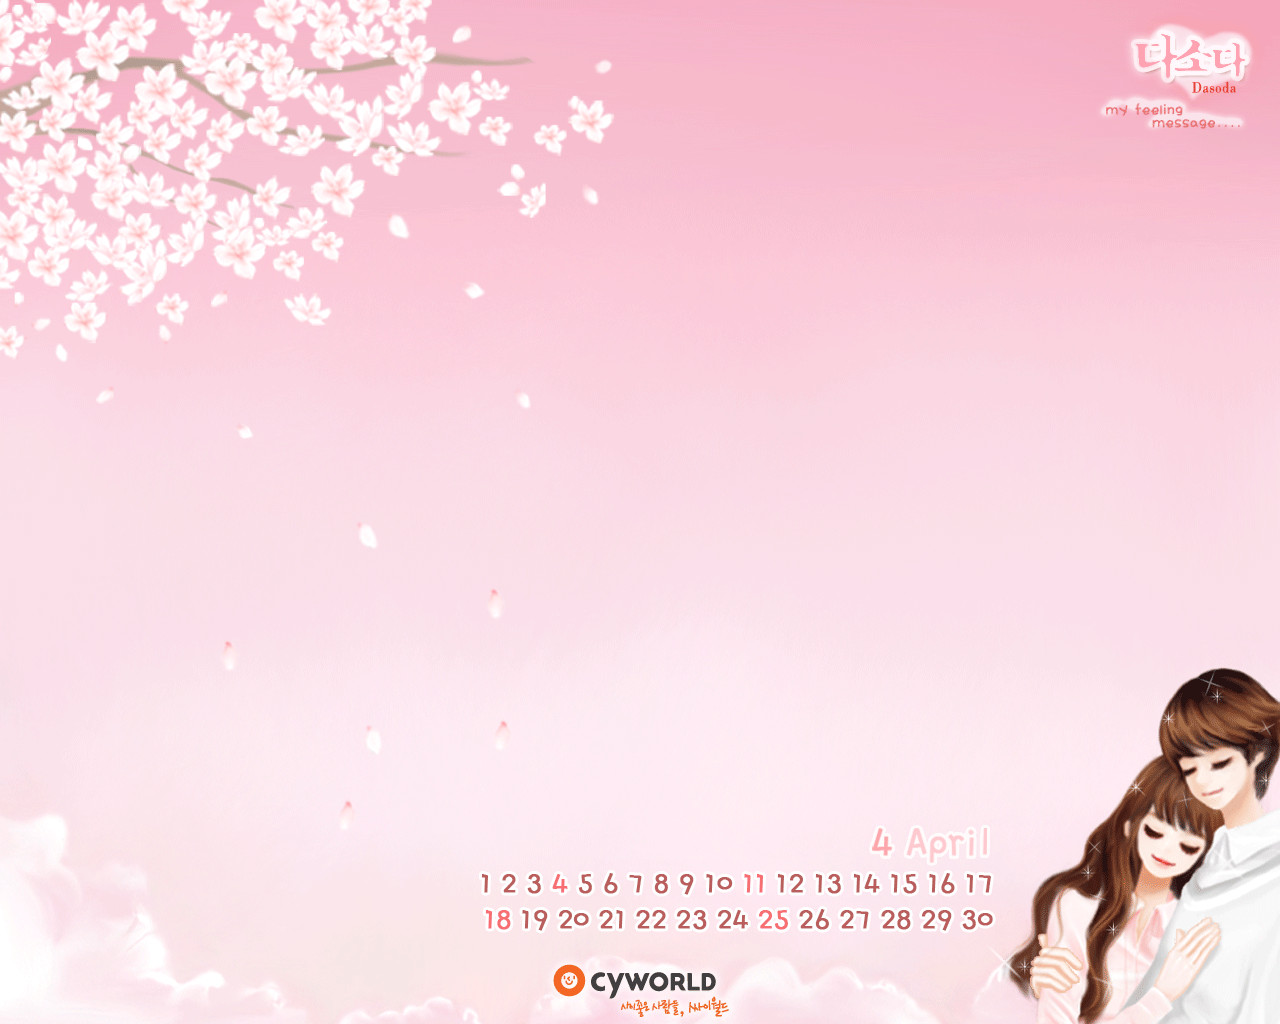 In January calendar wallpaper 3818